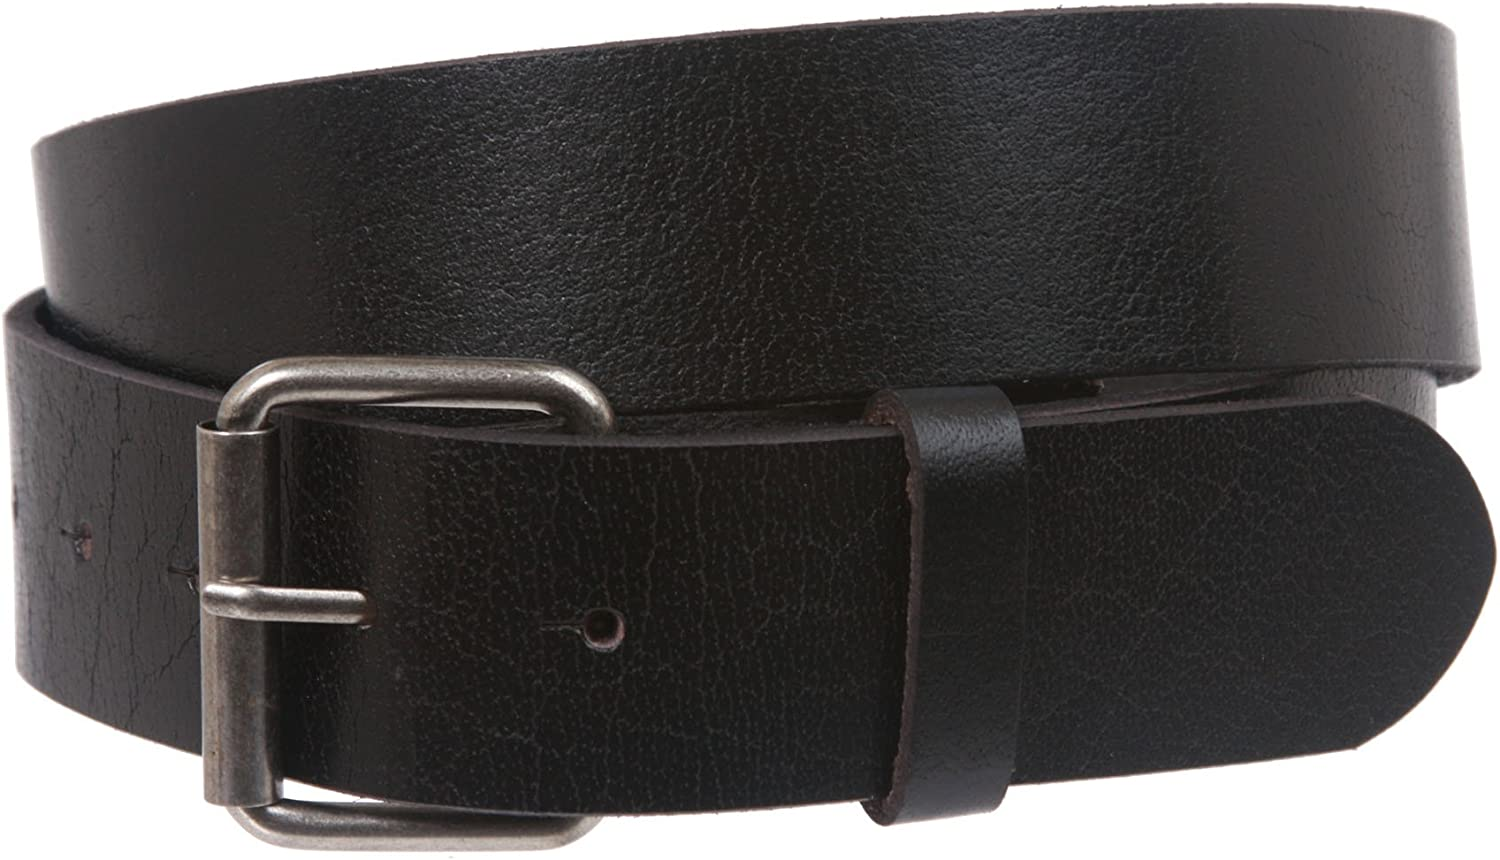 Snap On Oiltanned Oneply Genuine Leather Belt